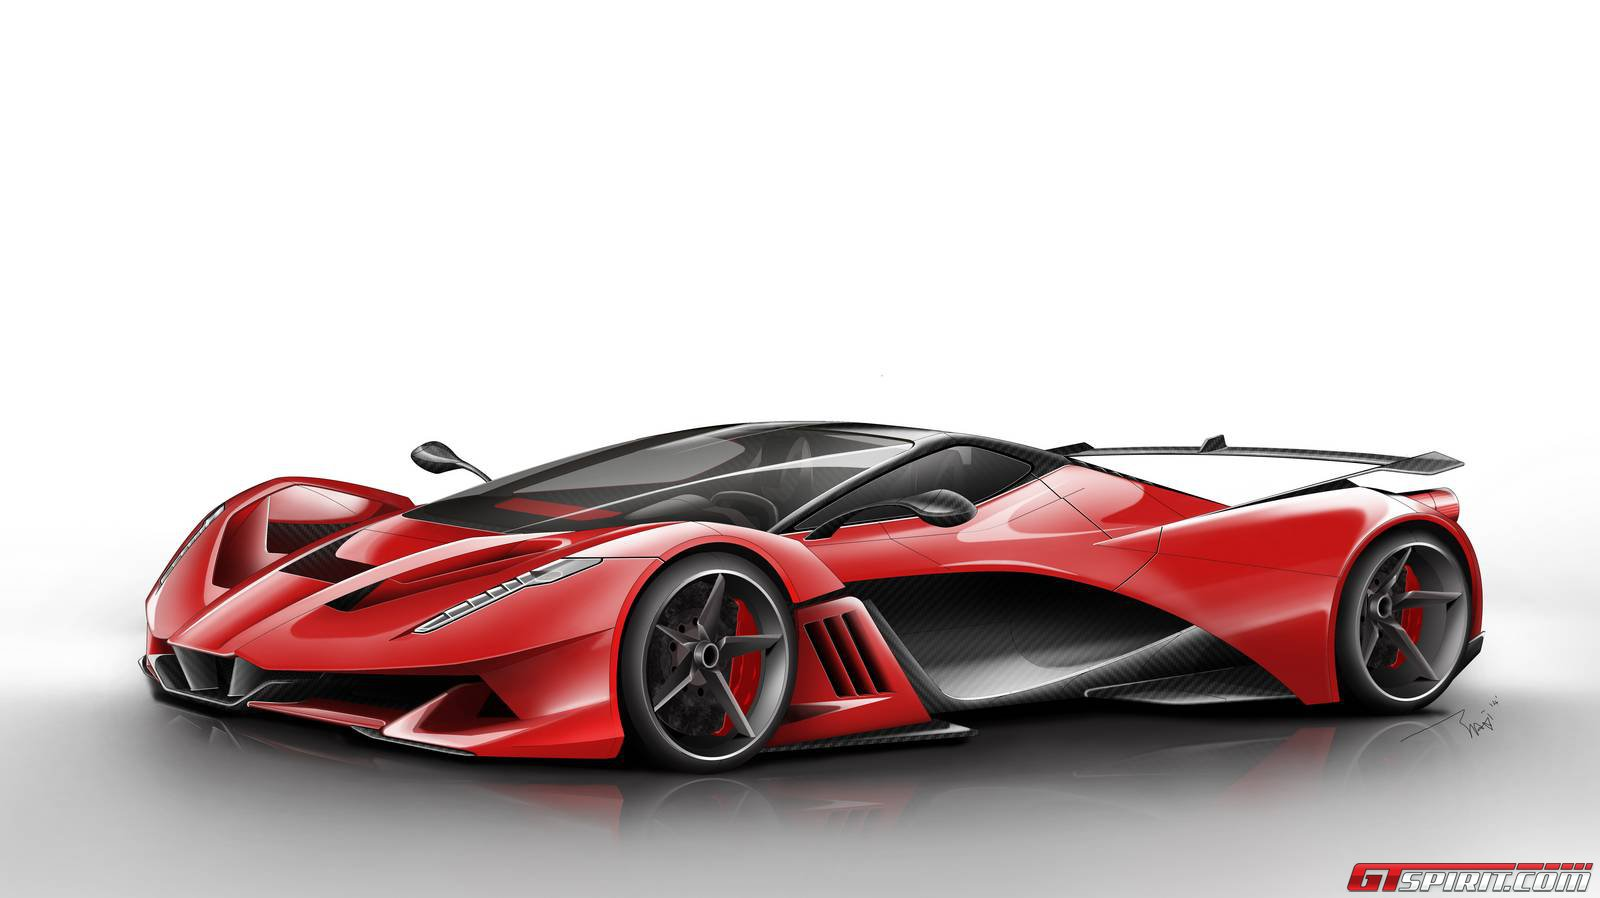 2015 Concept Cars News About 2015 Concept Cars.html/page/about Us | Autos Post